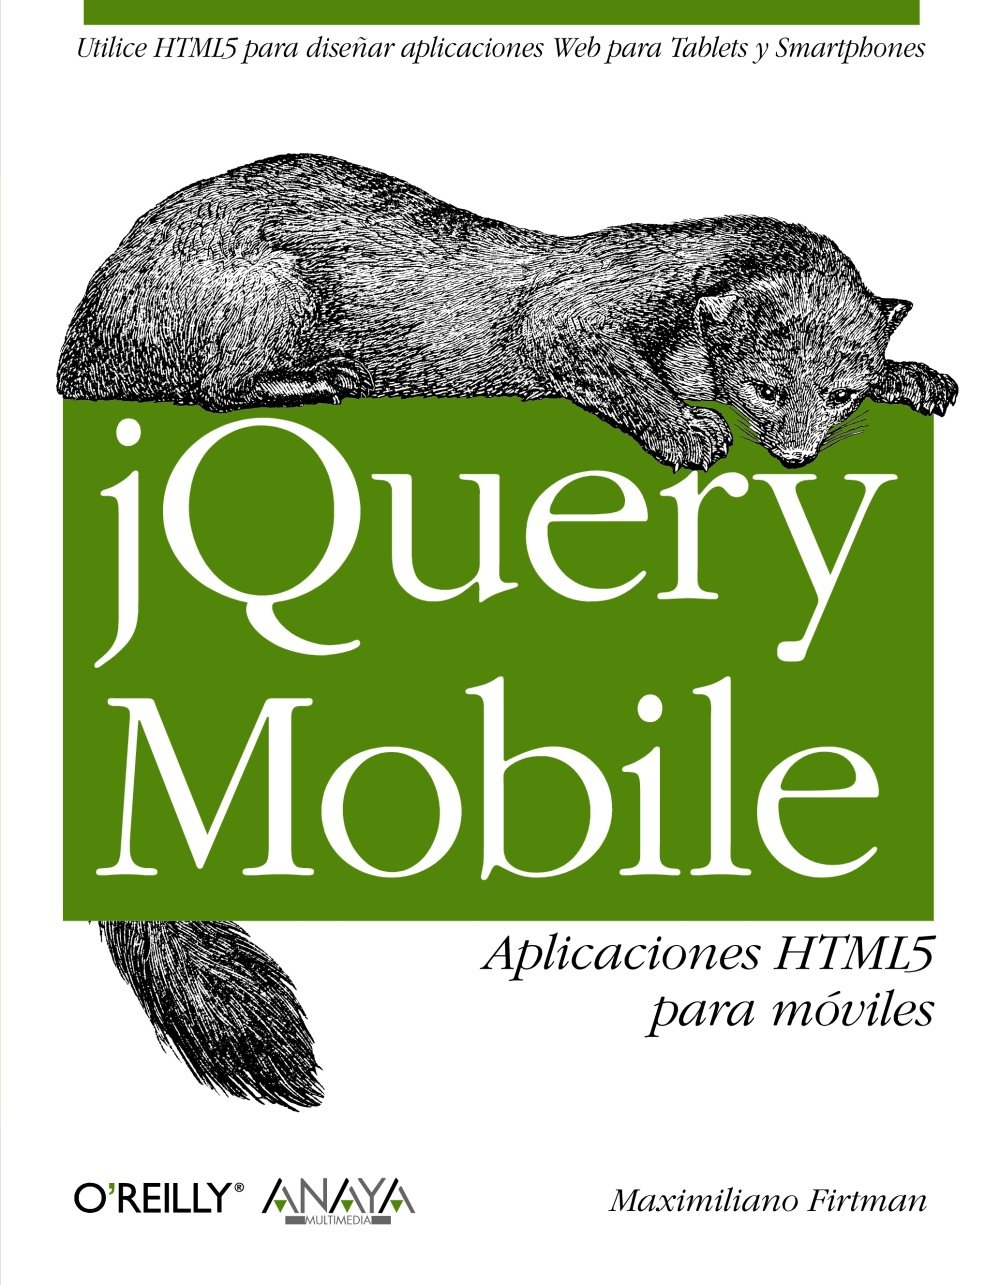 jQuery Mobile. Aplicaciones HTML5 para móviles (Anaya Multimedia/O´Reilly) Tapa blanda – 19 jun 2012 Maximiliano Firtman 8441532095 Hardware - Mobile Devices COMPUTERS / Computer Science